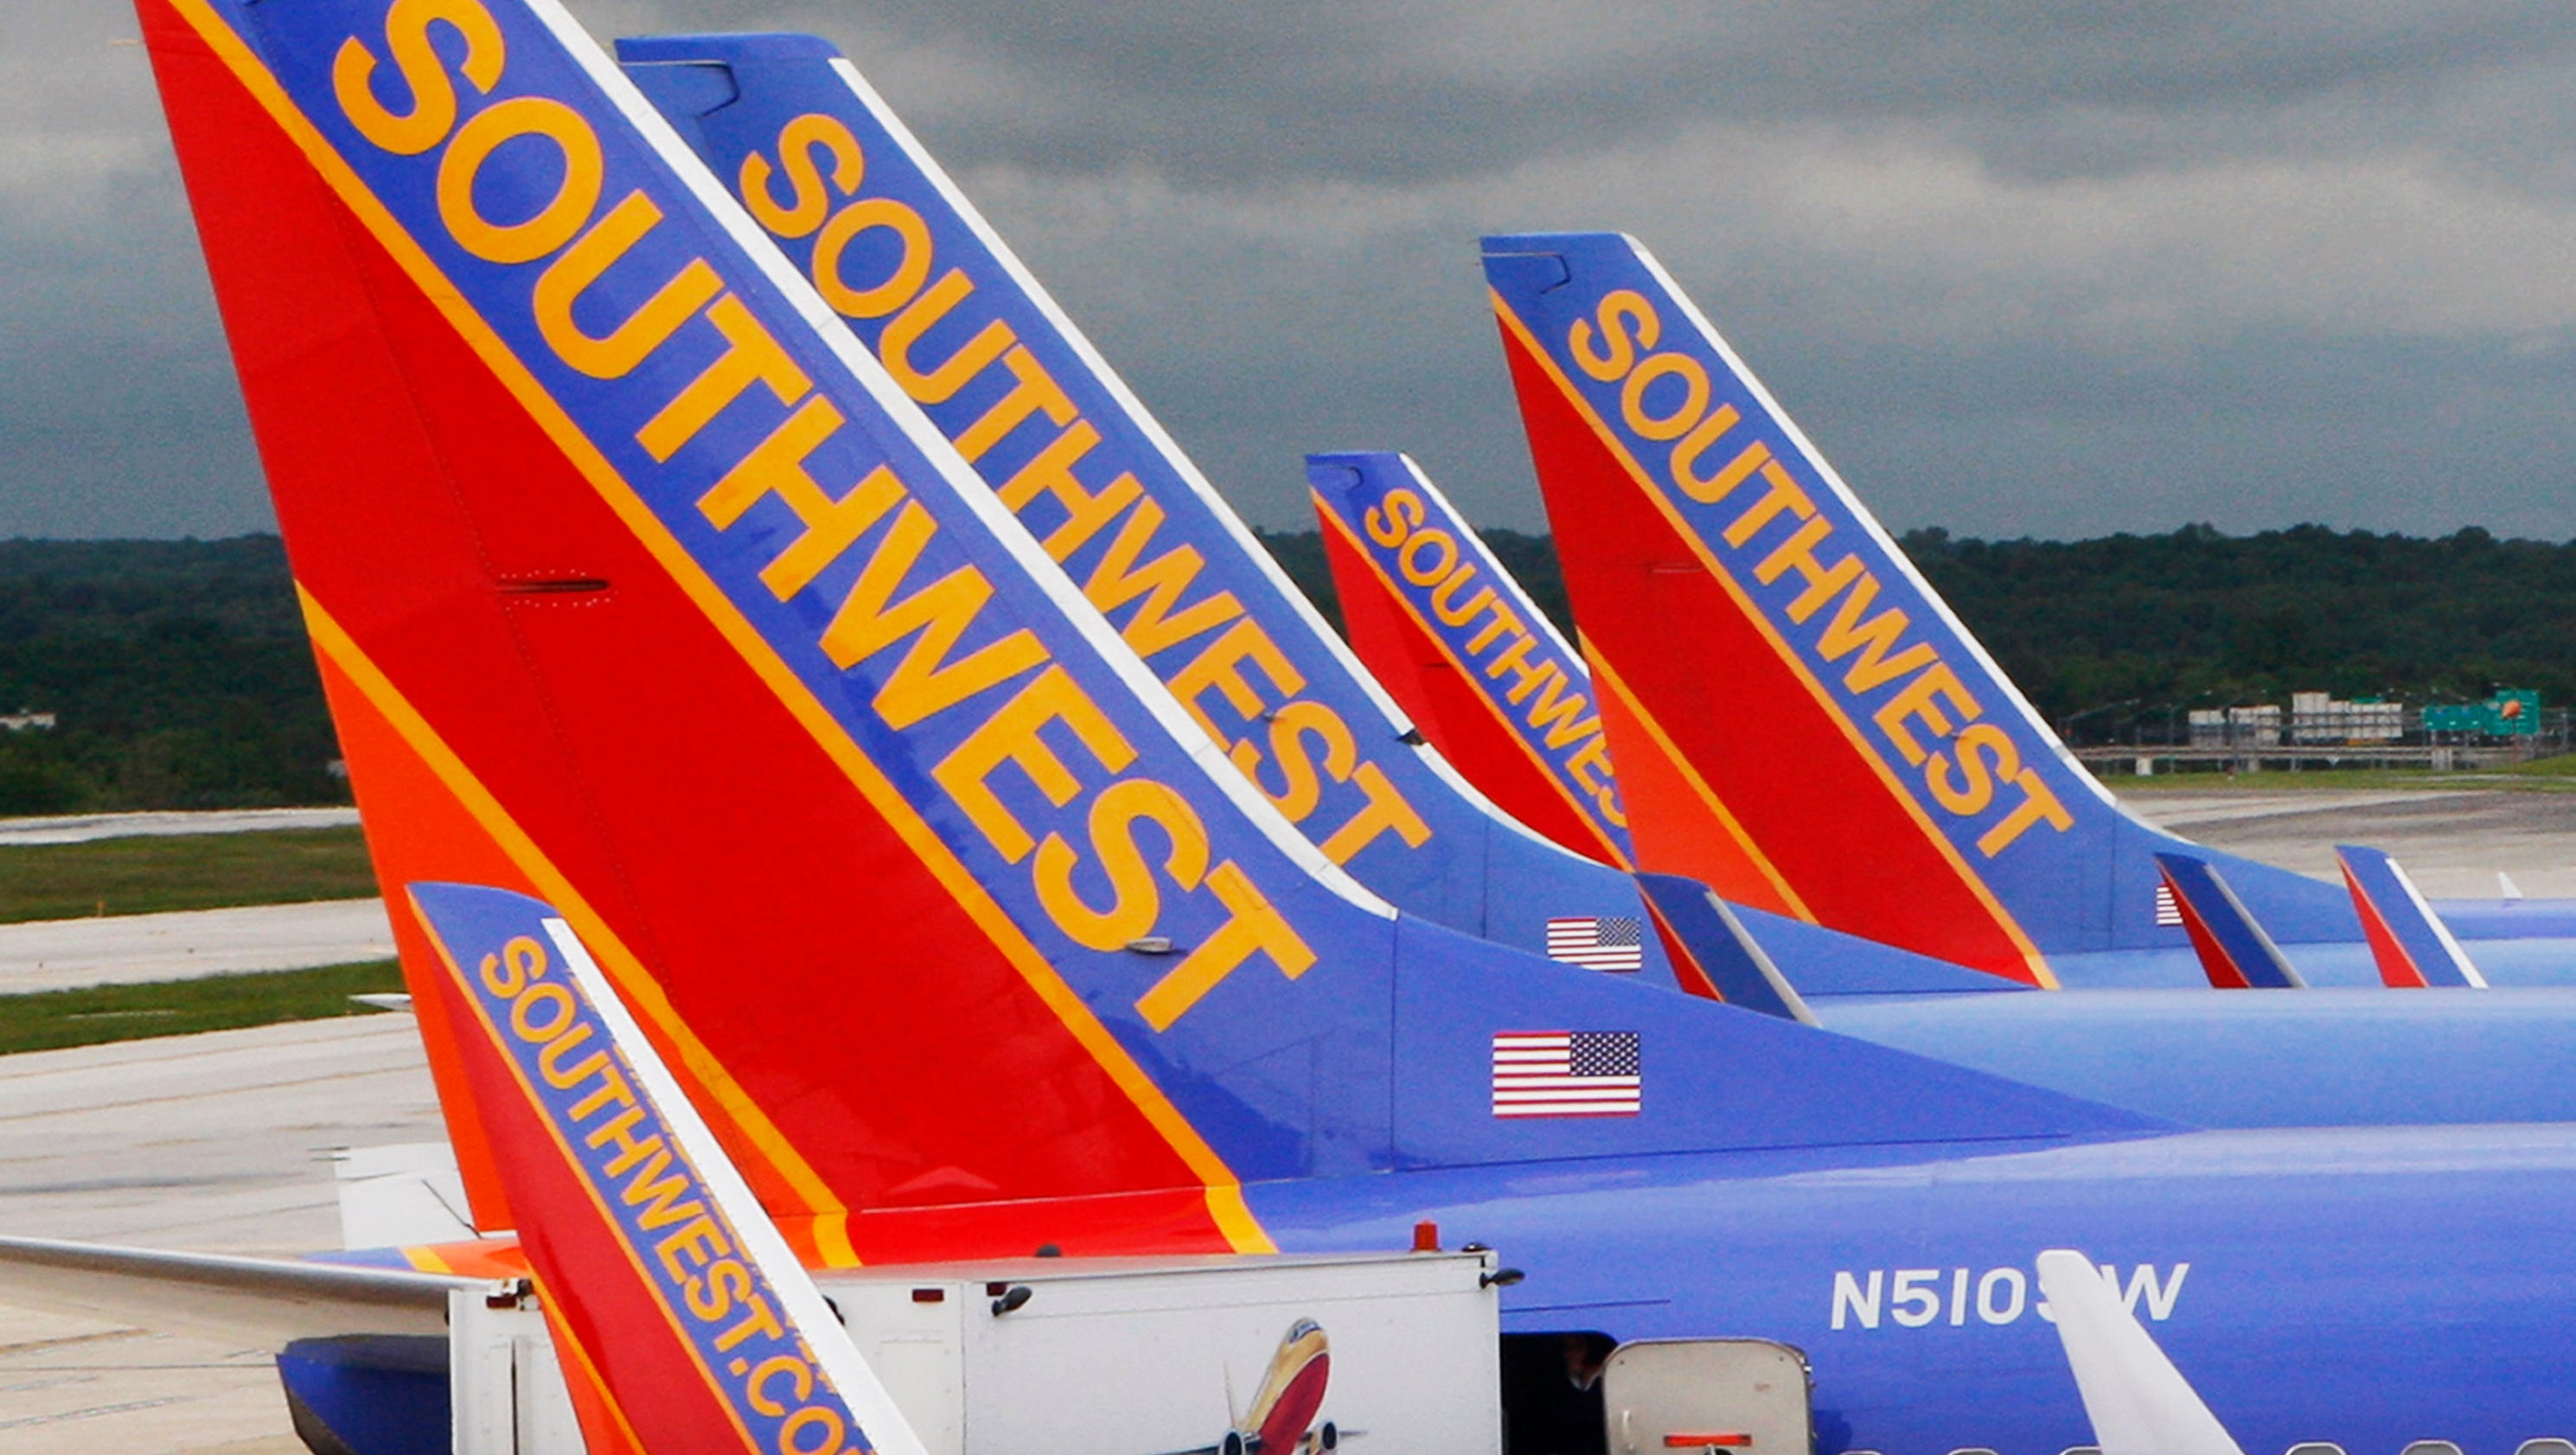 Southwest Airlines Offers Winter Travel Sale Carrier offers domestic fares starting as low as $49 and international fares as low as $99 one-way to select destinations October 02, DALLAS, Oct. 2, /PRNewswire/ -- Southwest Airlines Co. (NYSE: LUV) has launched a three-day sale .